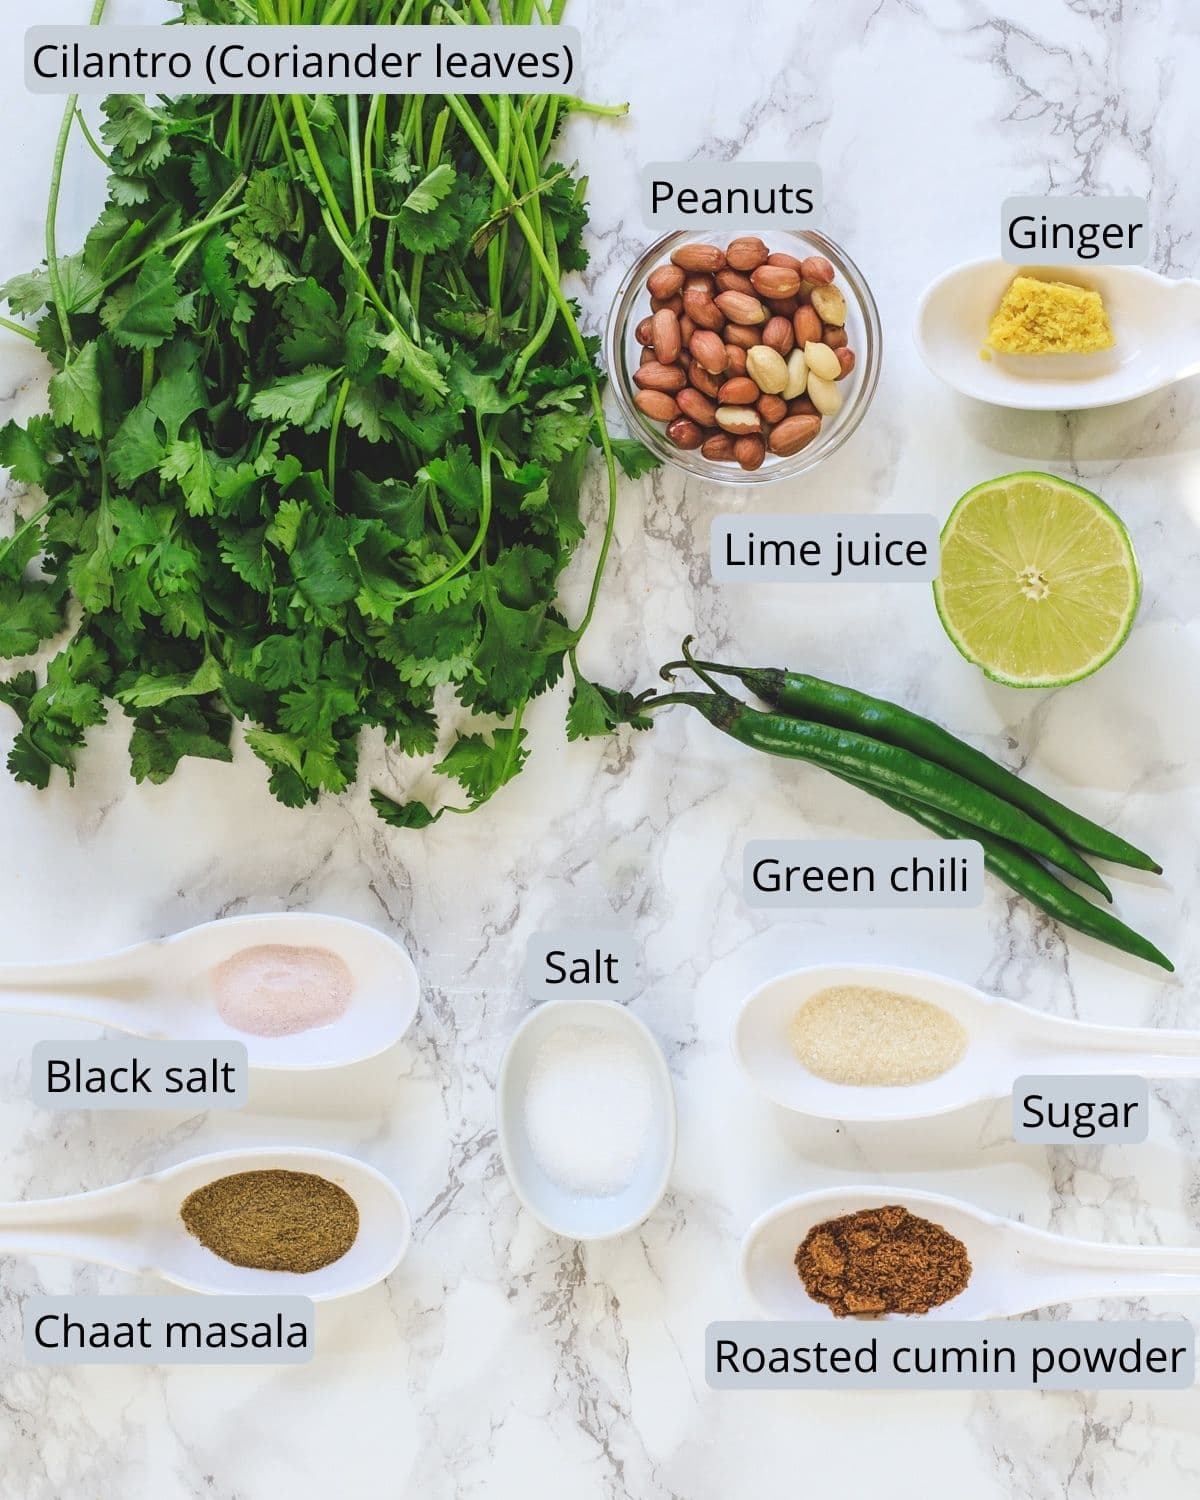 Ingredients used in making cilantro chutney on the marble surface.